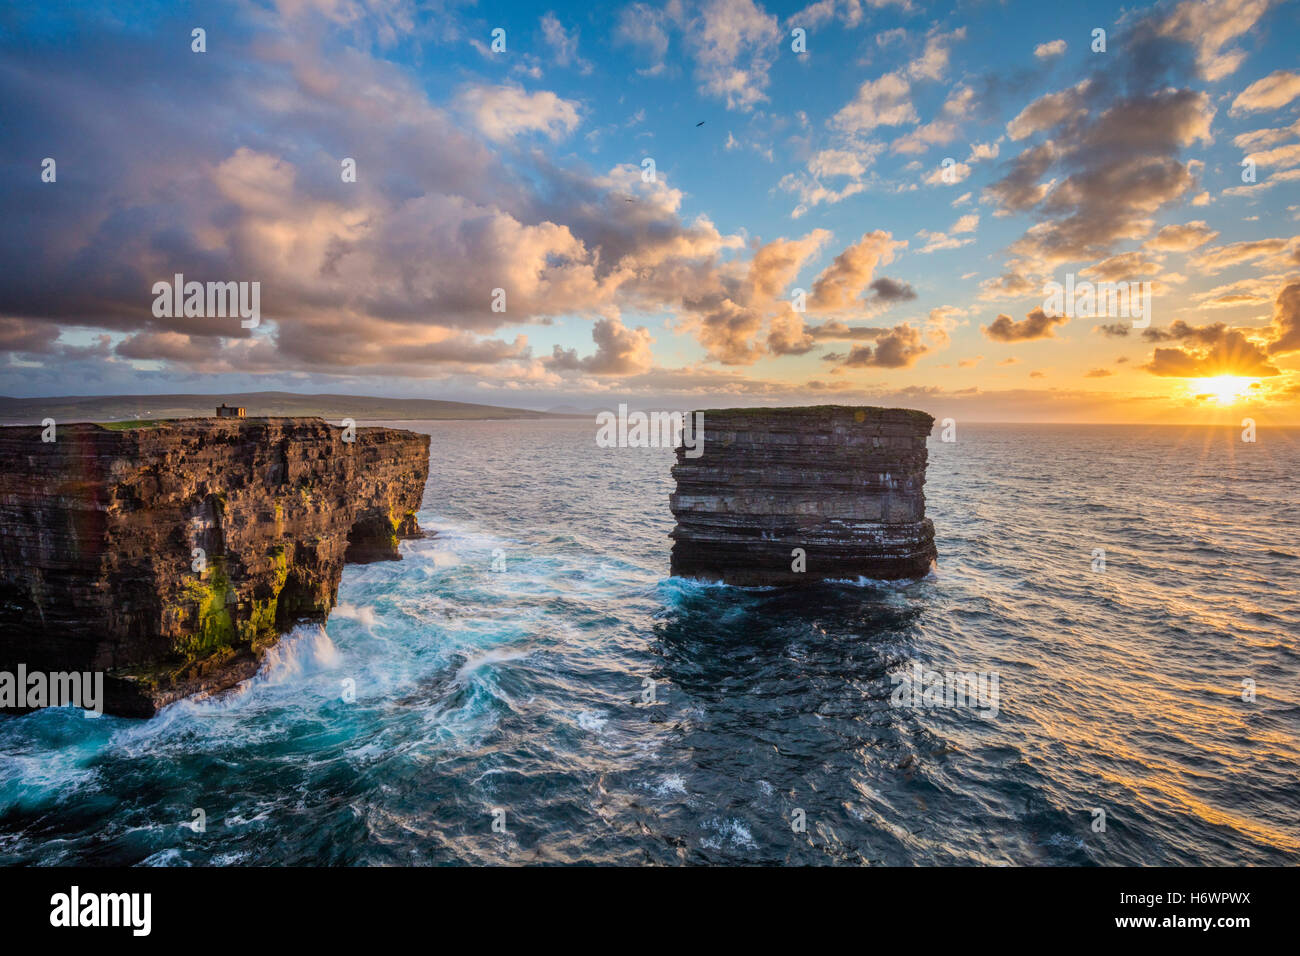 Evening at Dun Briste, Downpatrick Head, County Mayo, Ireland. - Stock Image